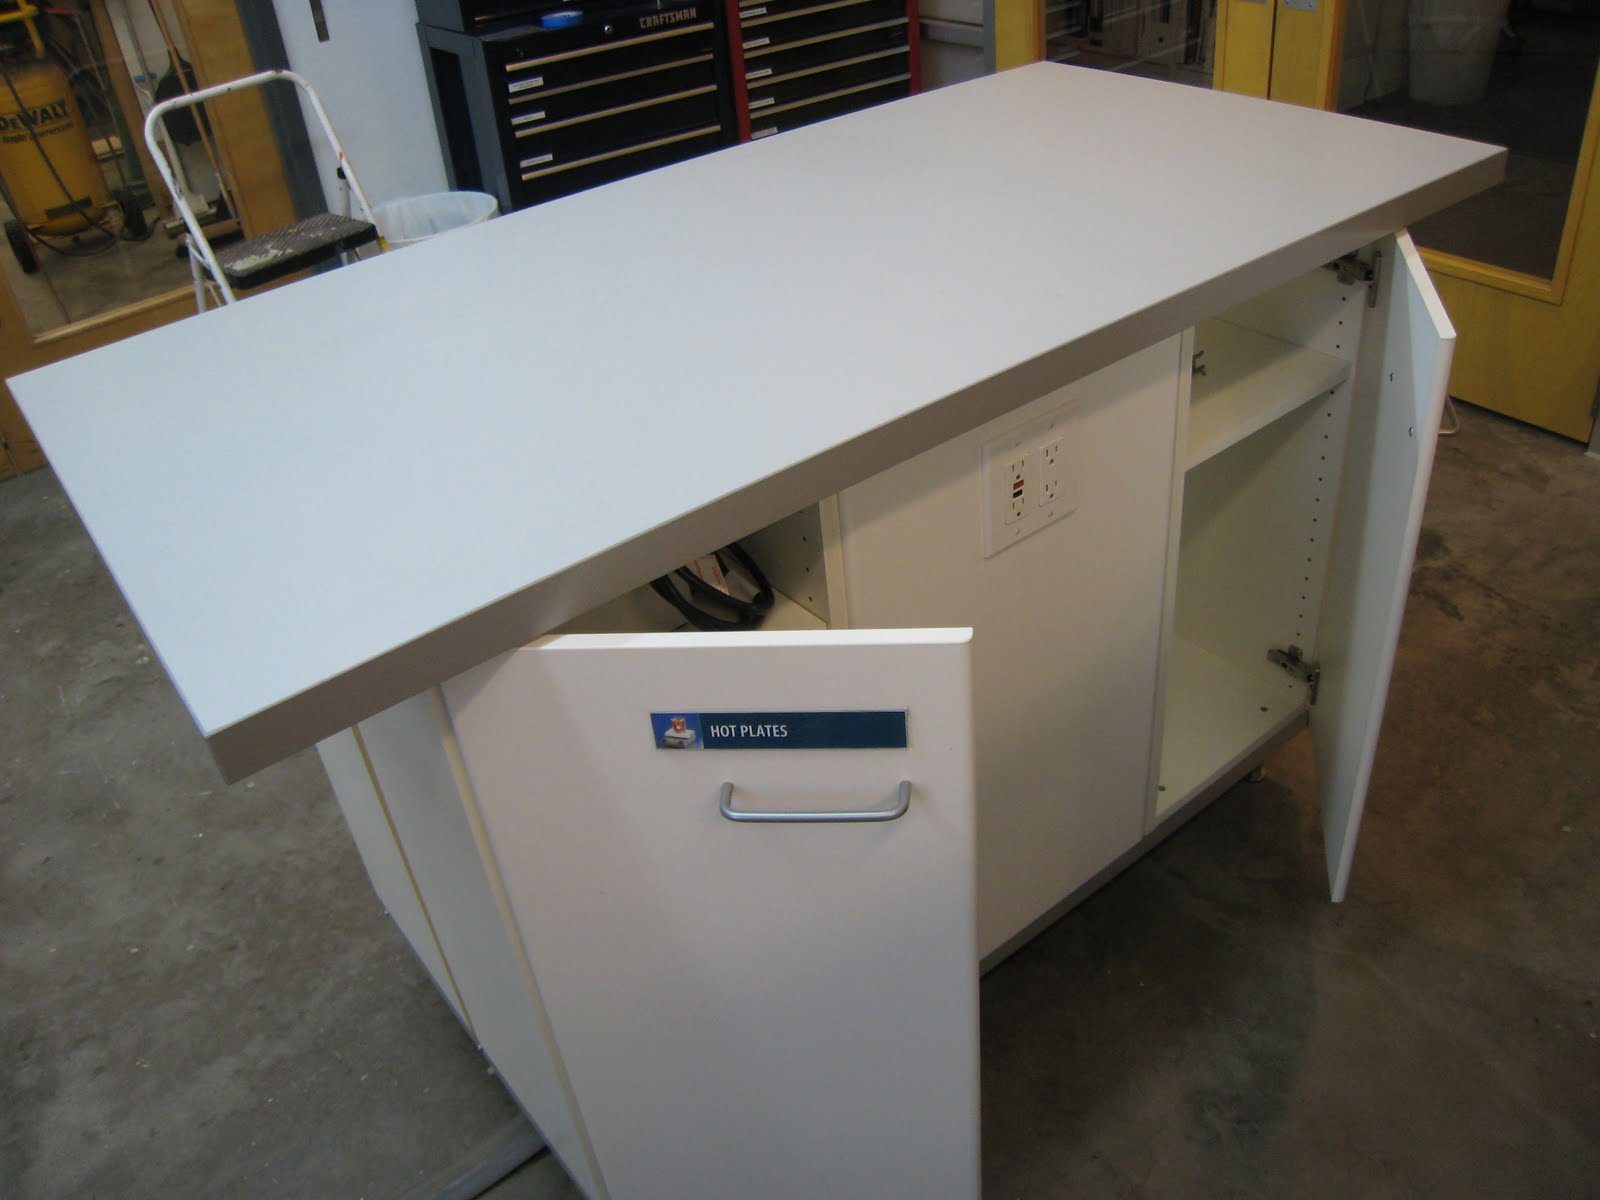 Astounding Lab Bench From Kitchen Cabinets Ikea Hackers Unemploymentrelief Wooden Chair Designs For Living Room Unemploymentrelieforg